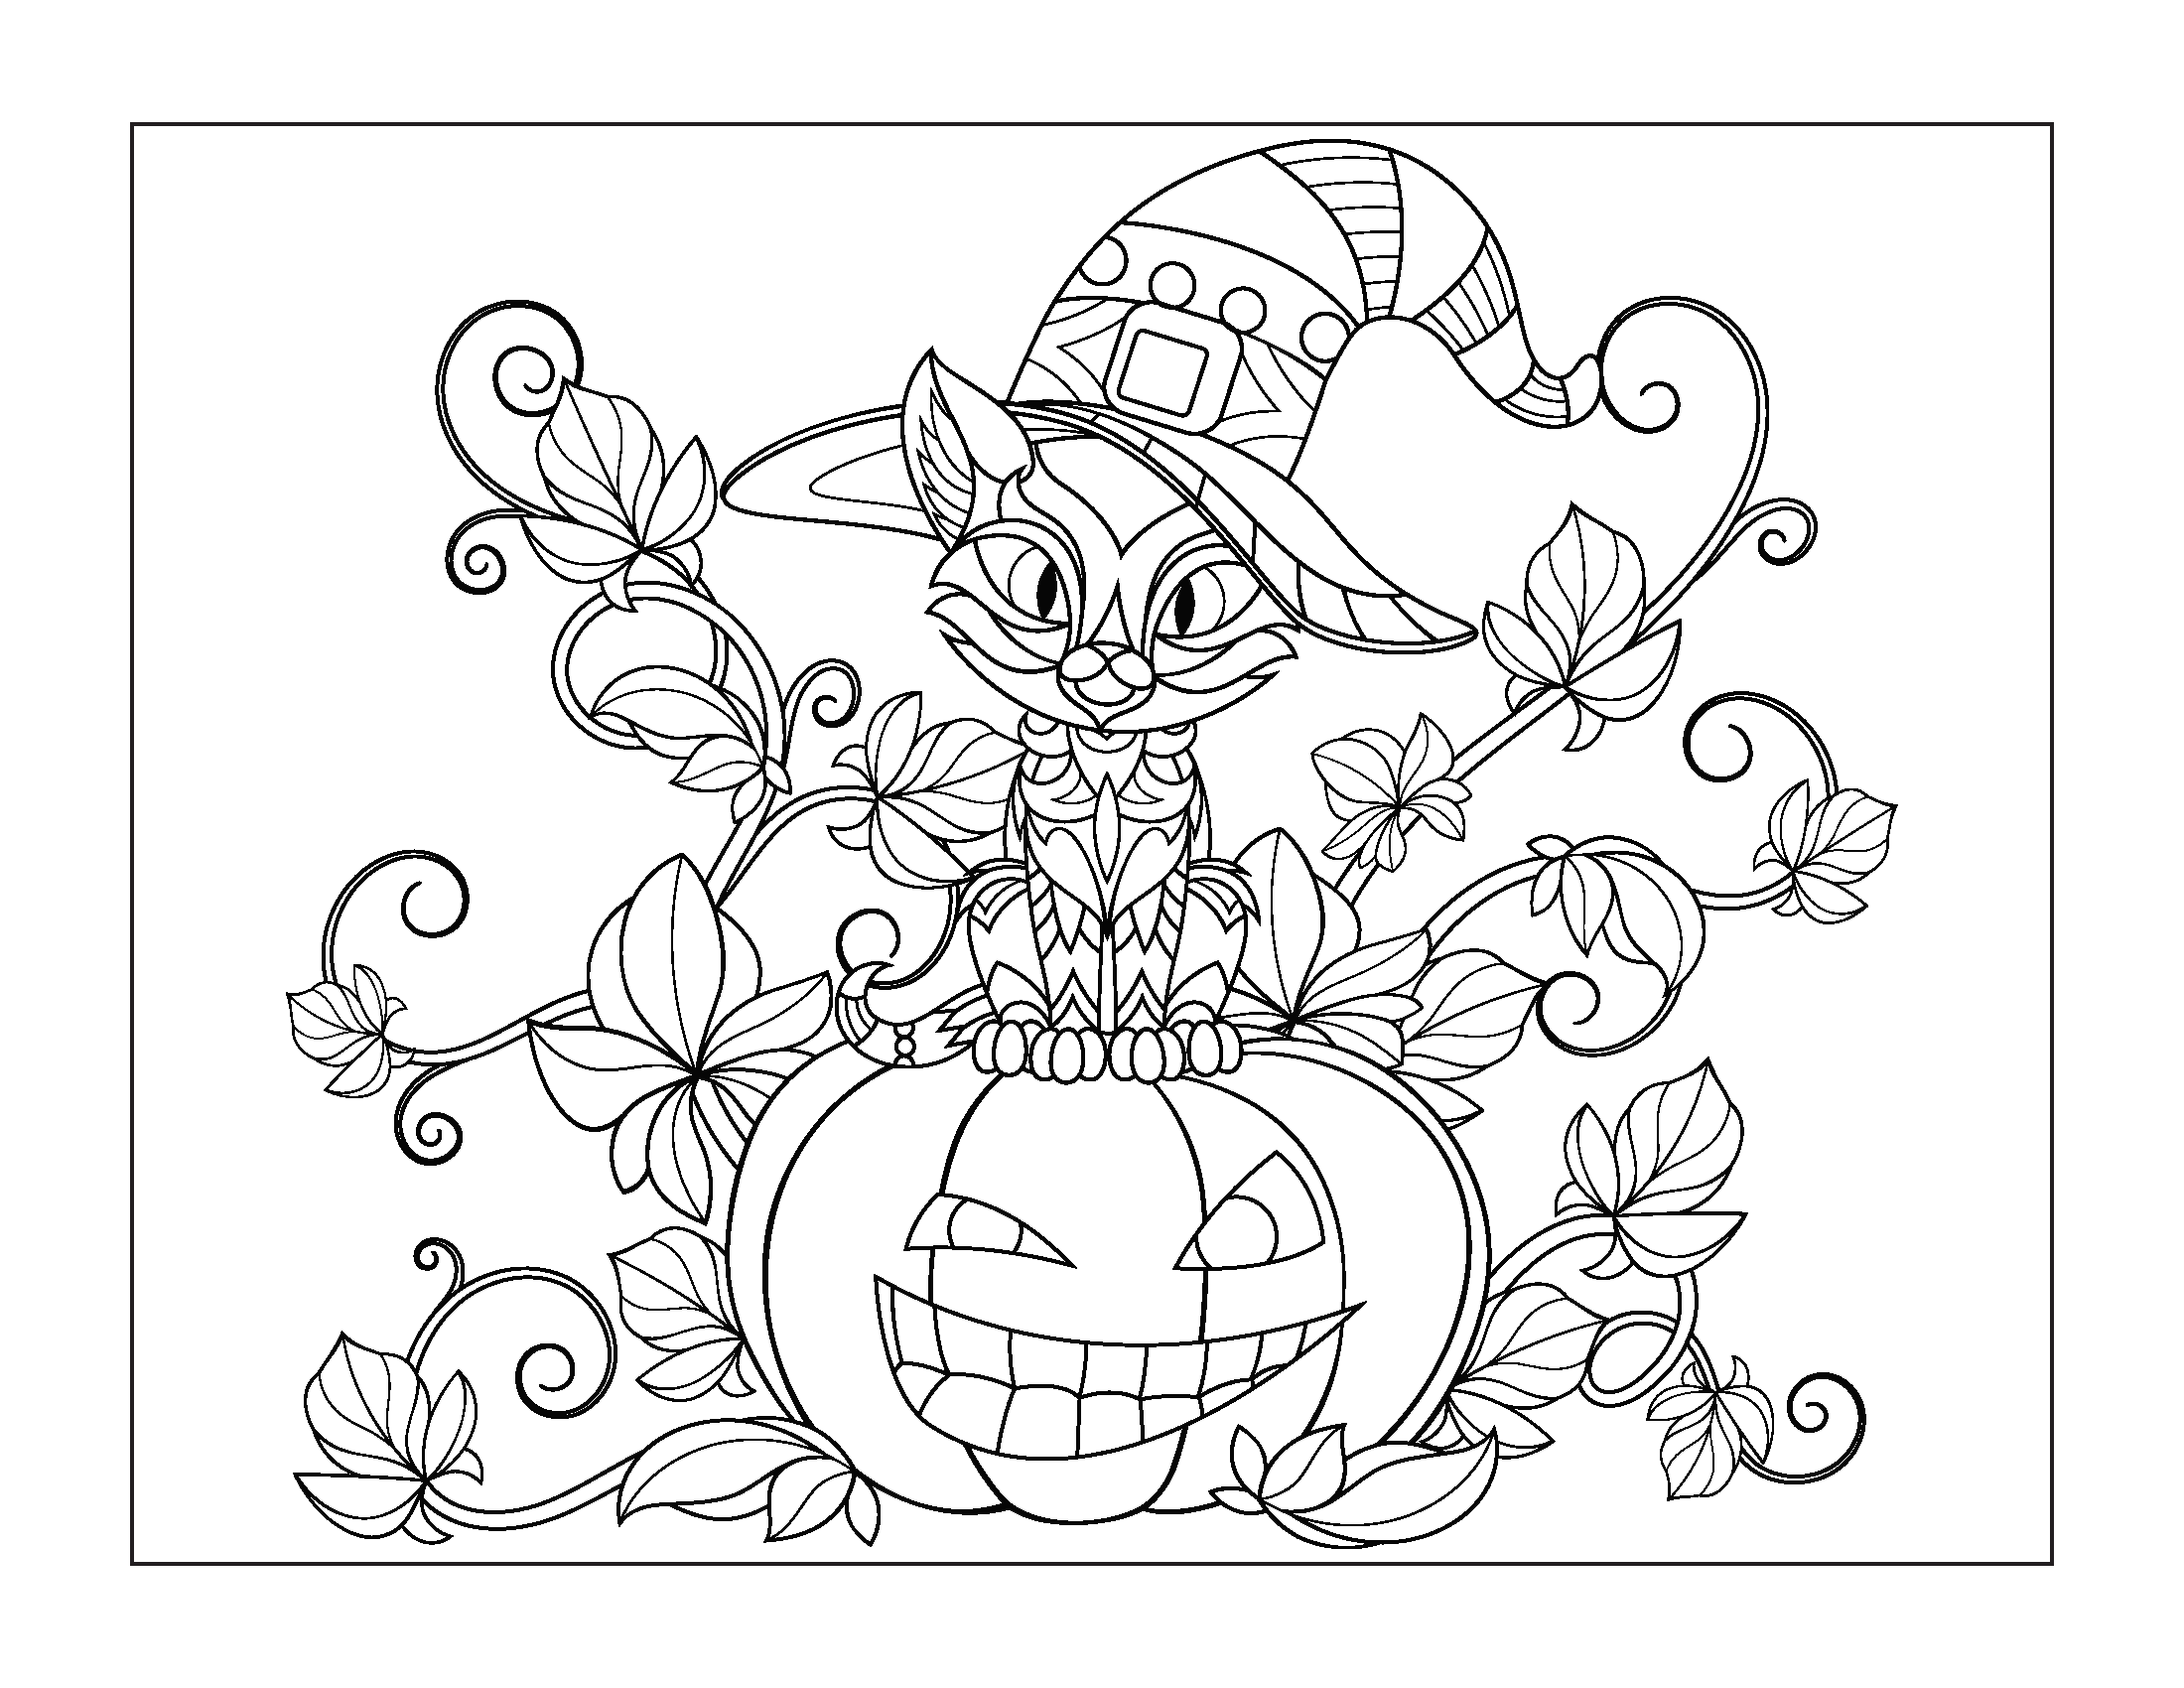 free printable coloring pages for older kids difficult coloring pages for older children coloring home for pages older coloring kids free printable